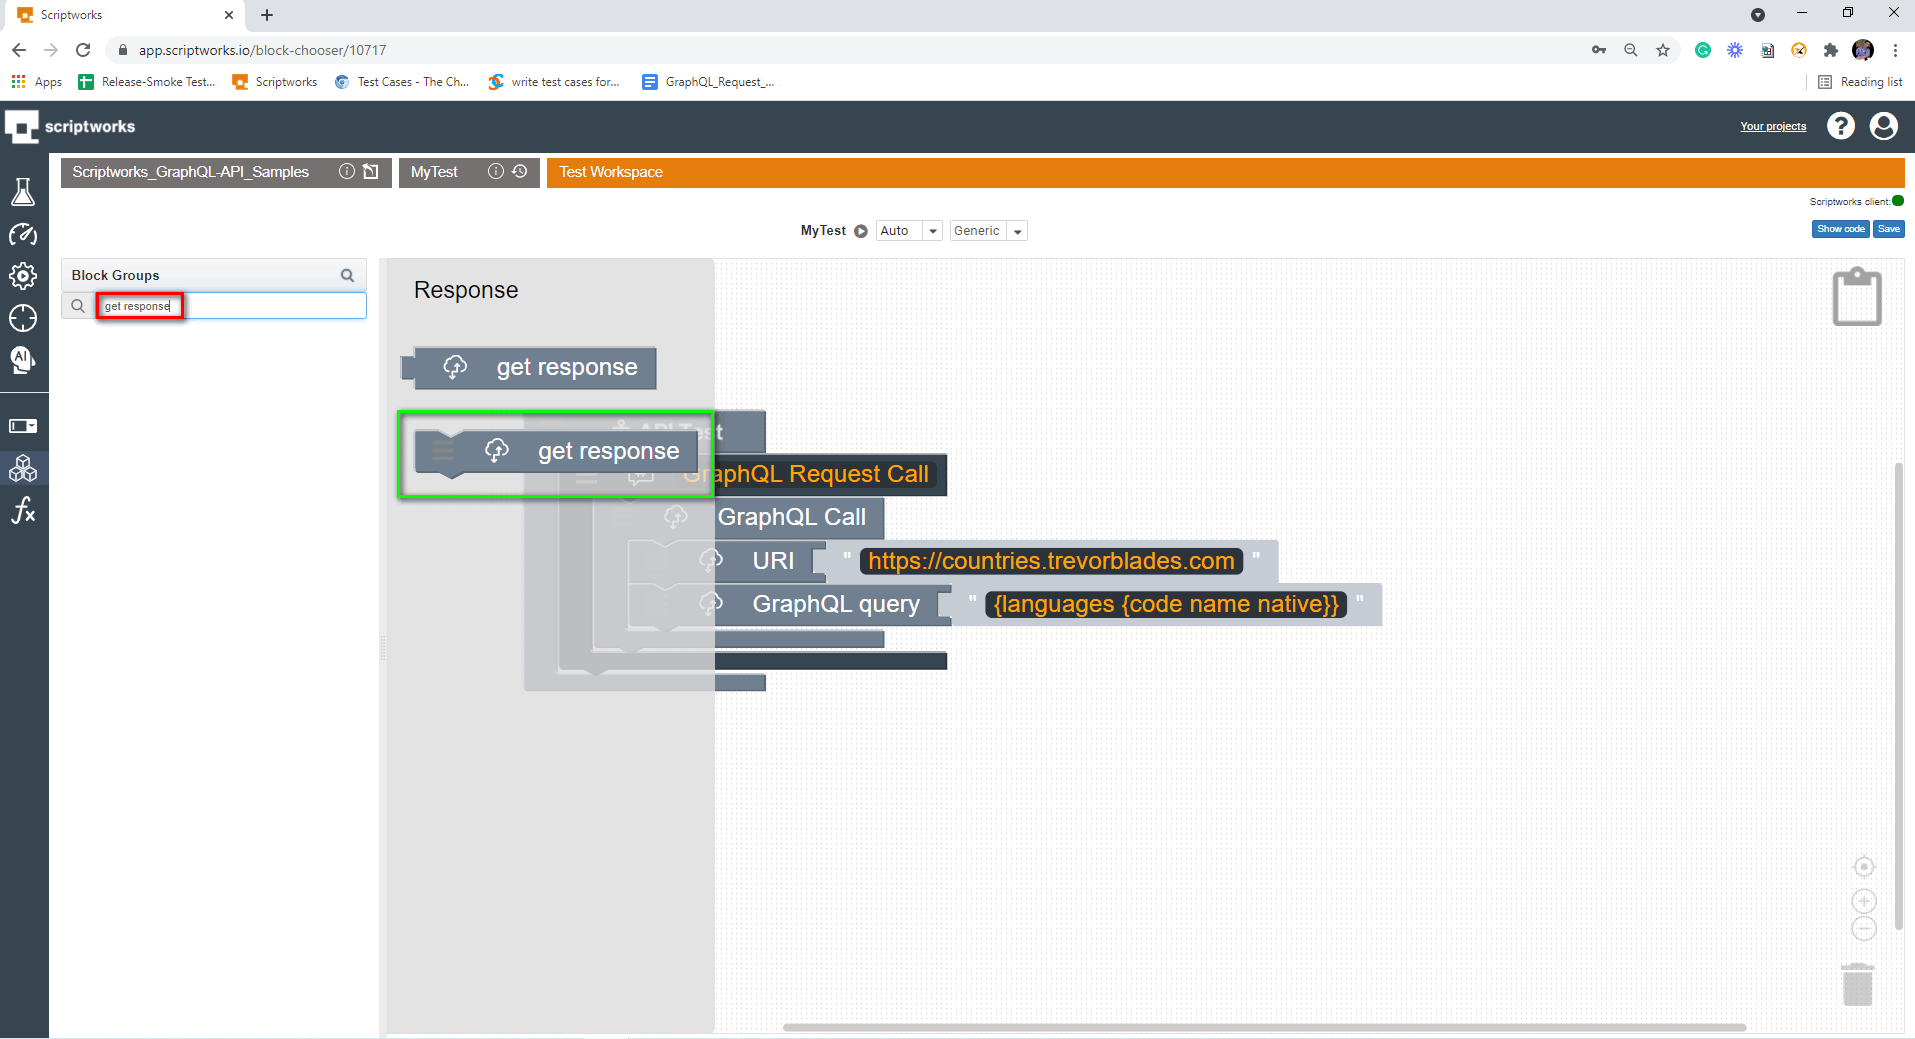 Search for Get Response from Left hand side panel